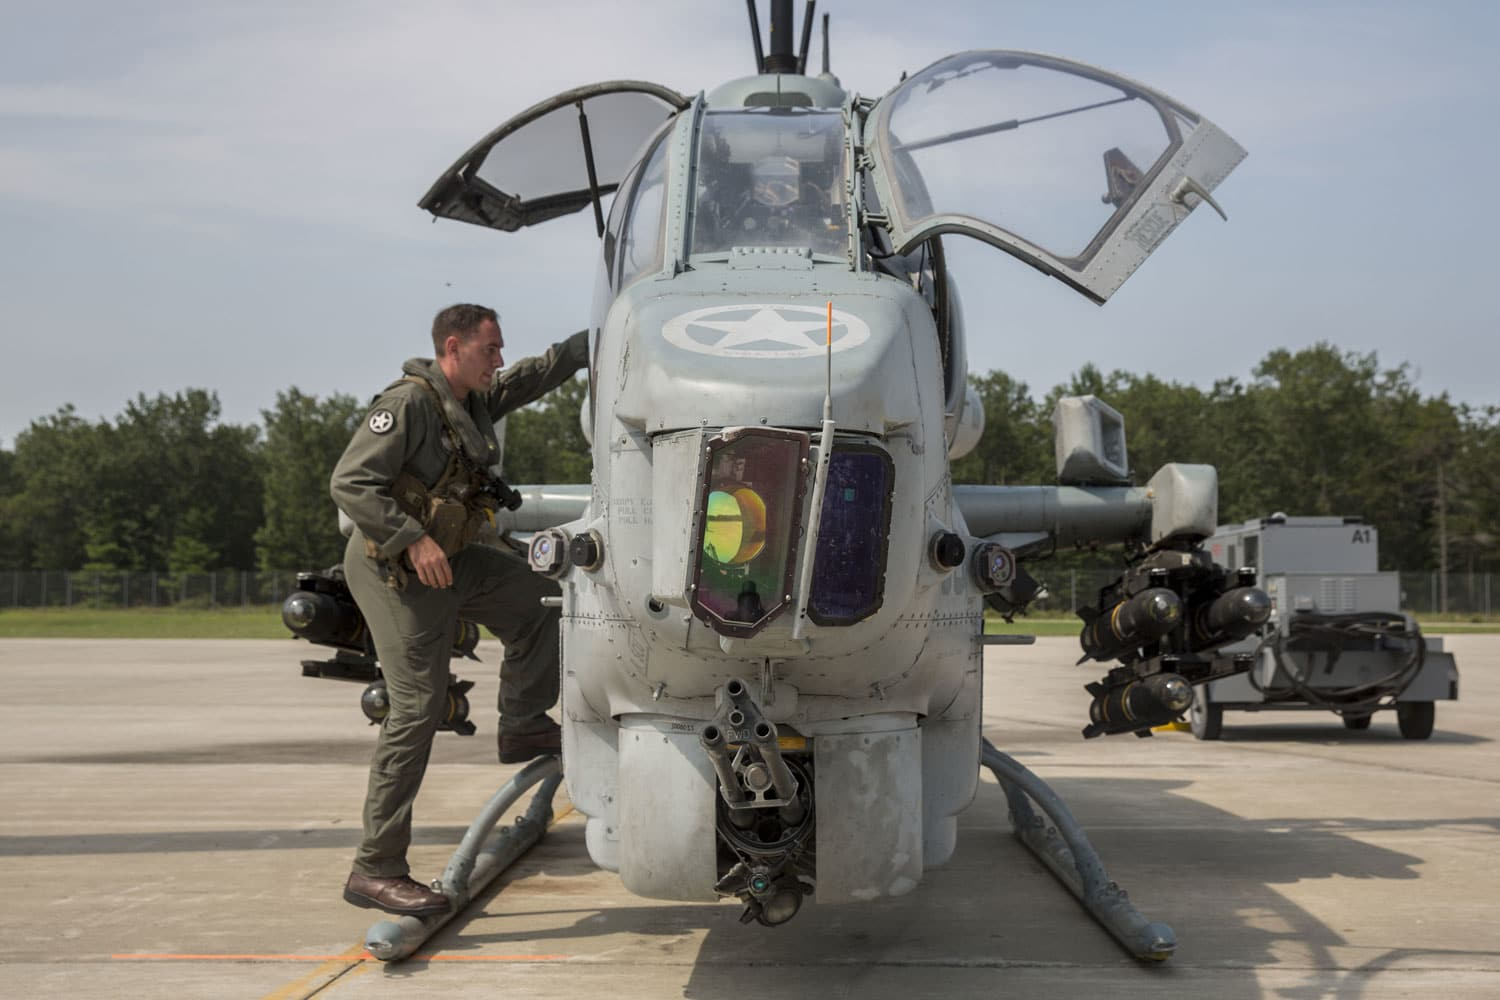 U.S. Marine Corps Maj. Paul D. Labalbo, an AH-1W Super Cobra pilot with Marine Light Attack Helicopter Squadron 269, inspects his aircraft during Northern Strike at the Combat Readiness Training Center Alpena, MI.